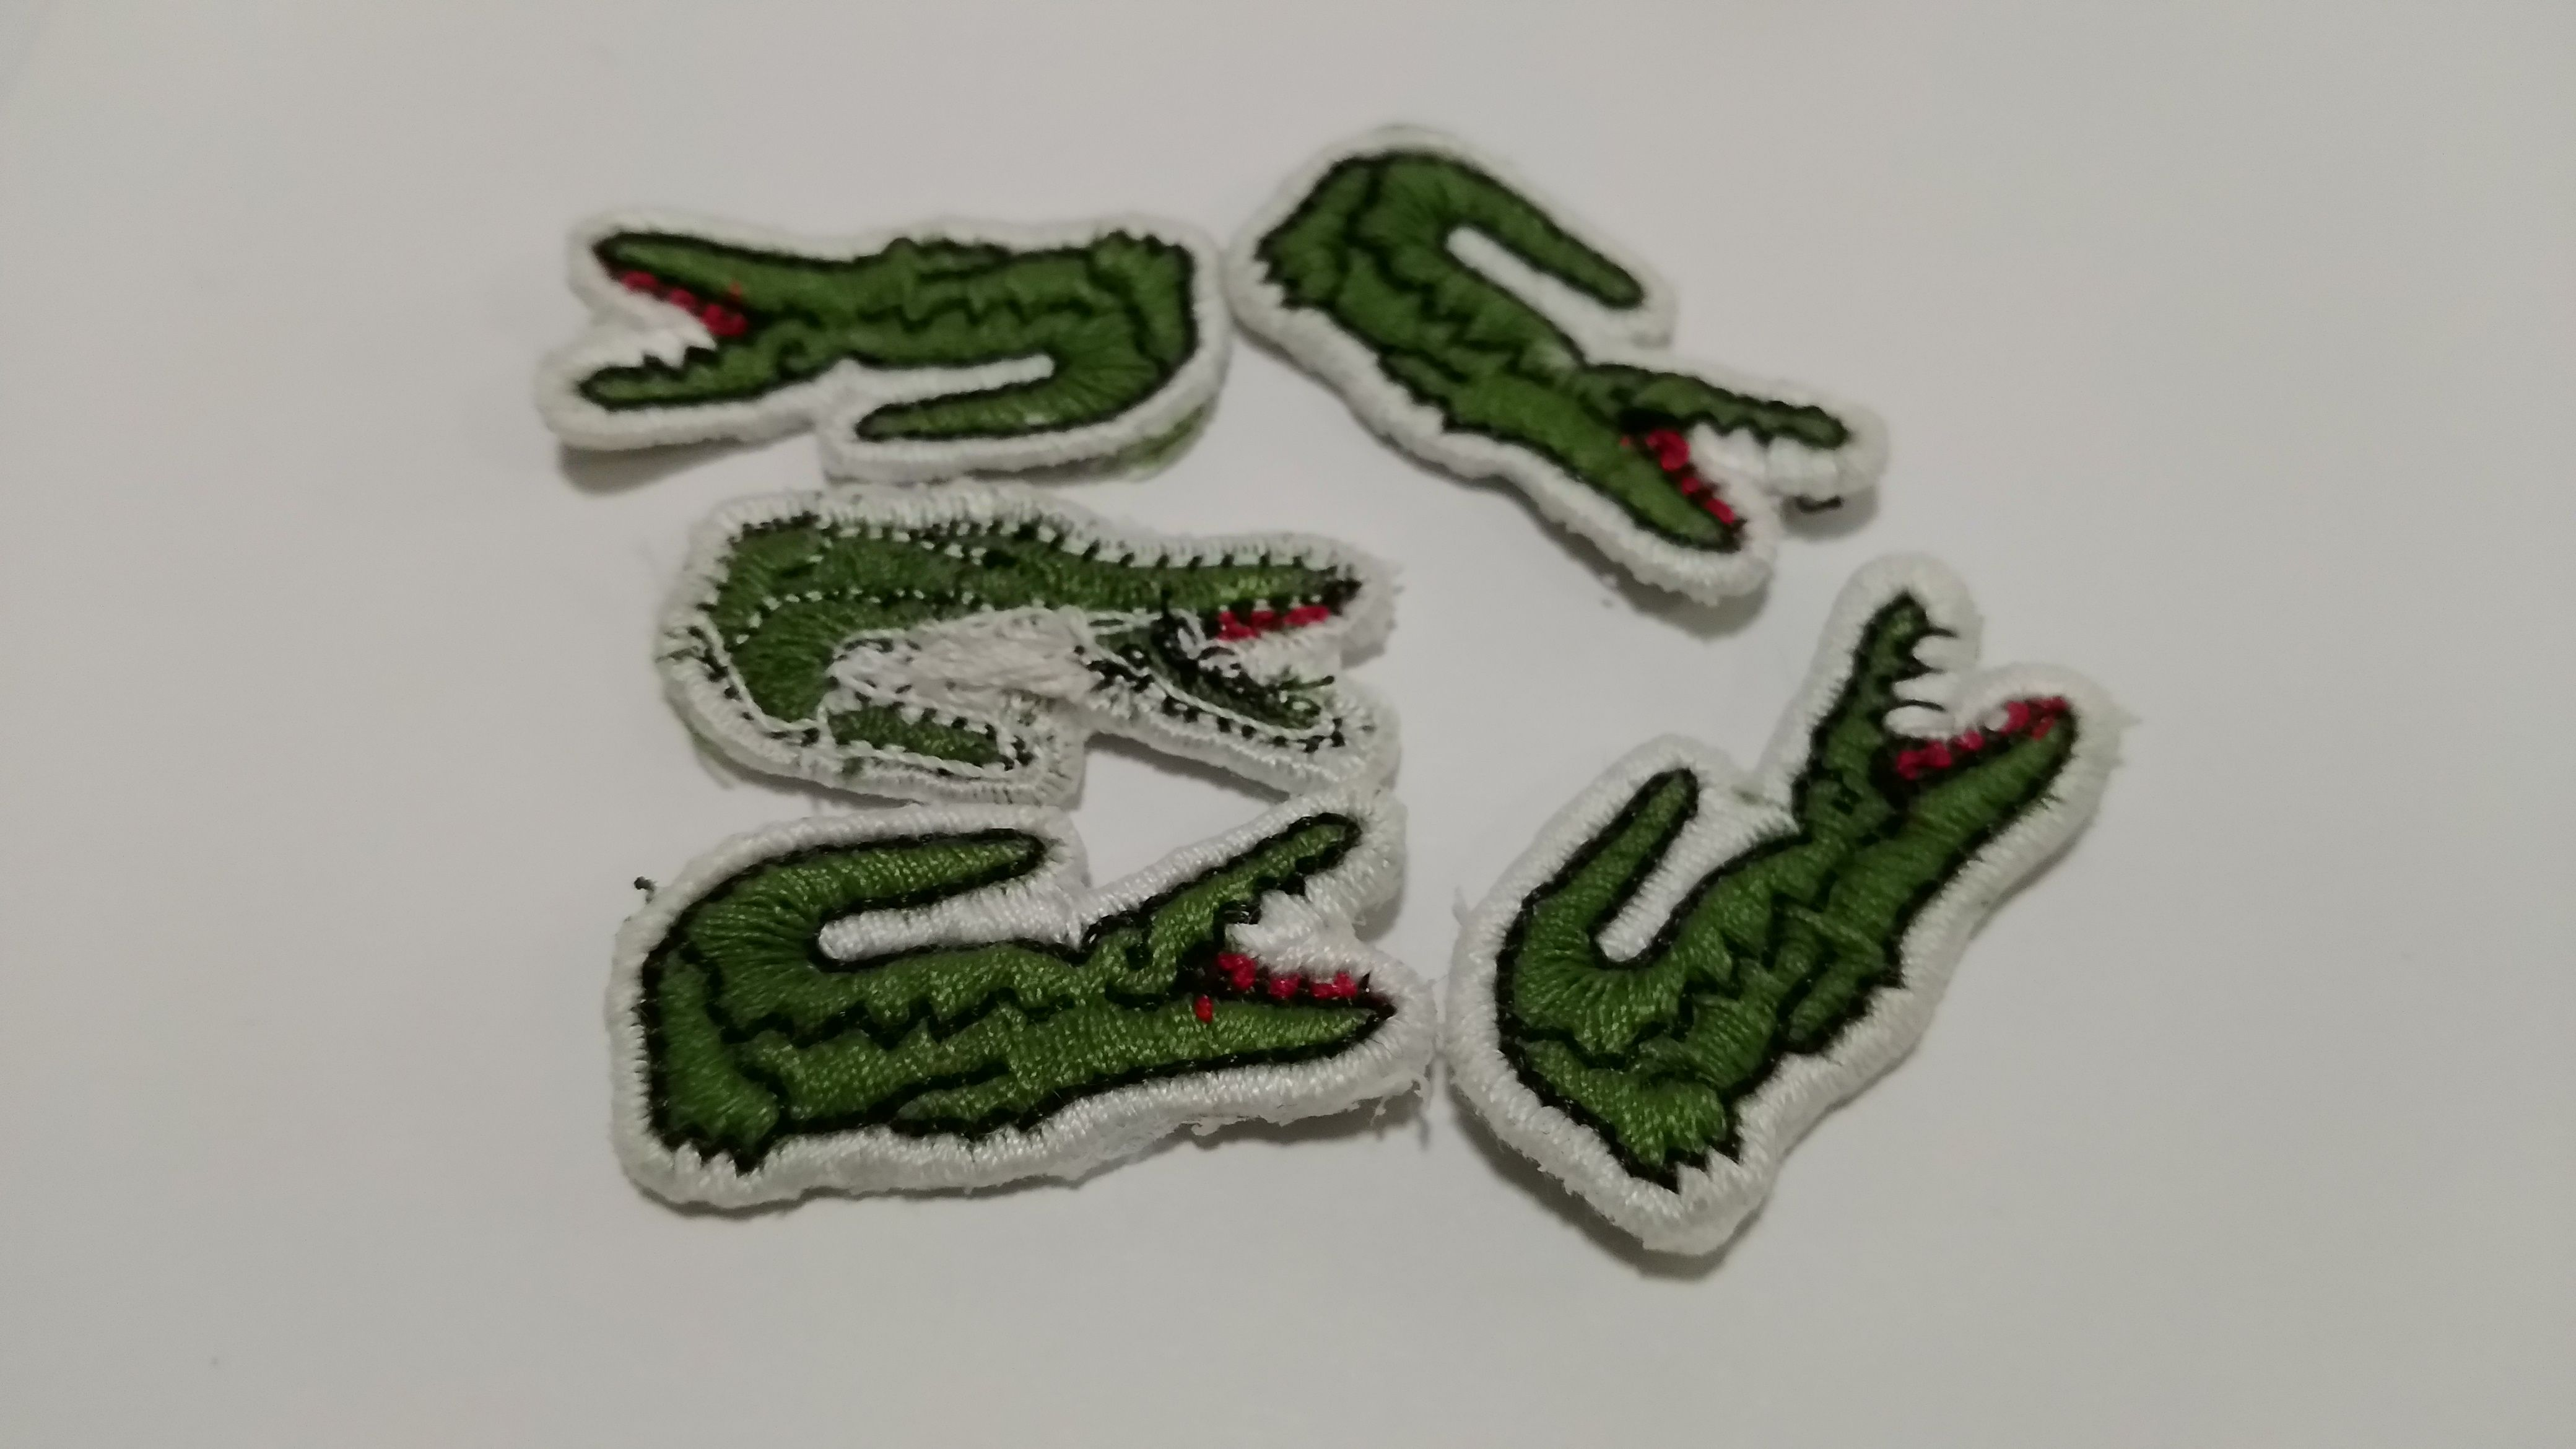 8530077d2 From KSTHL labels fatory  Alligator embroidery patch Lacoste crocodile  clothing Patch MOQ  300PCS Contact me at joyce ksthllabels.com